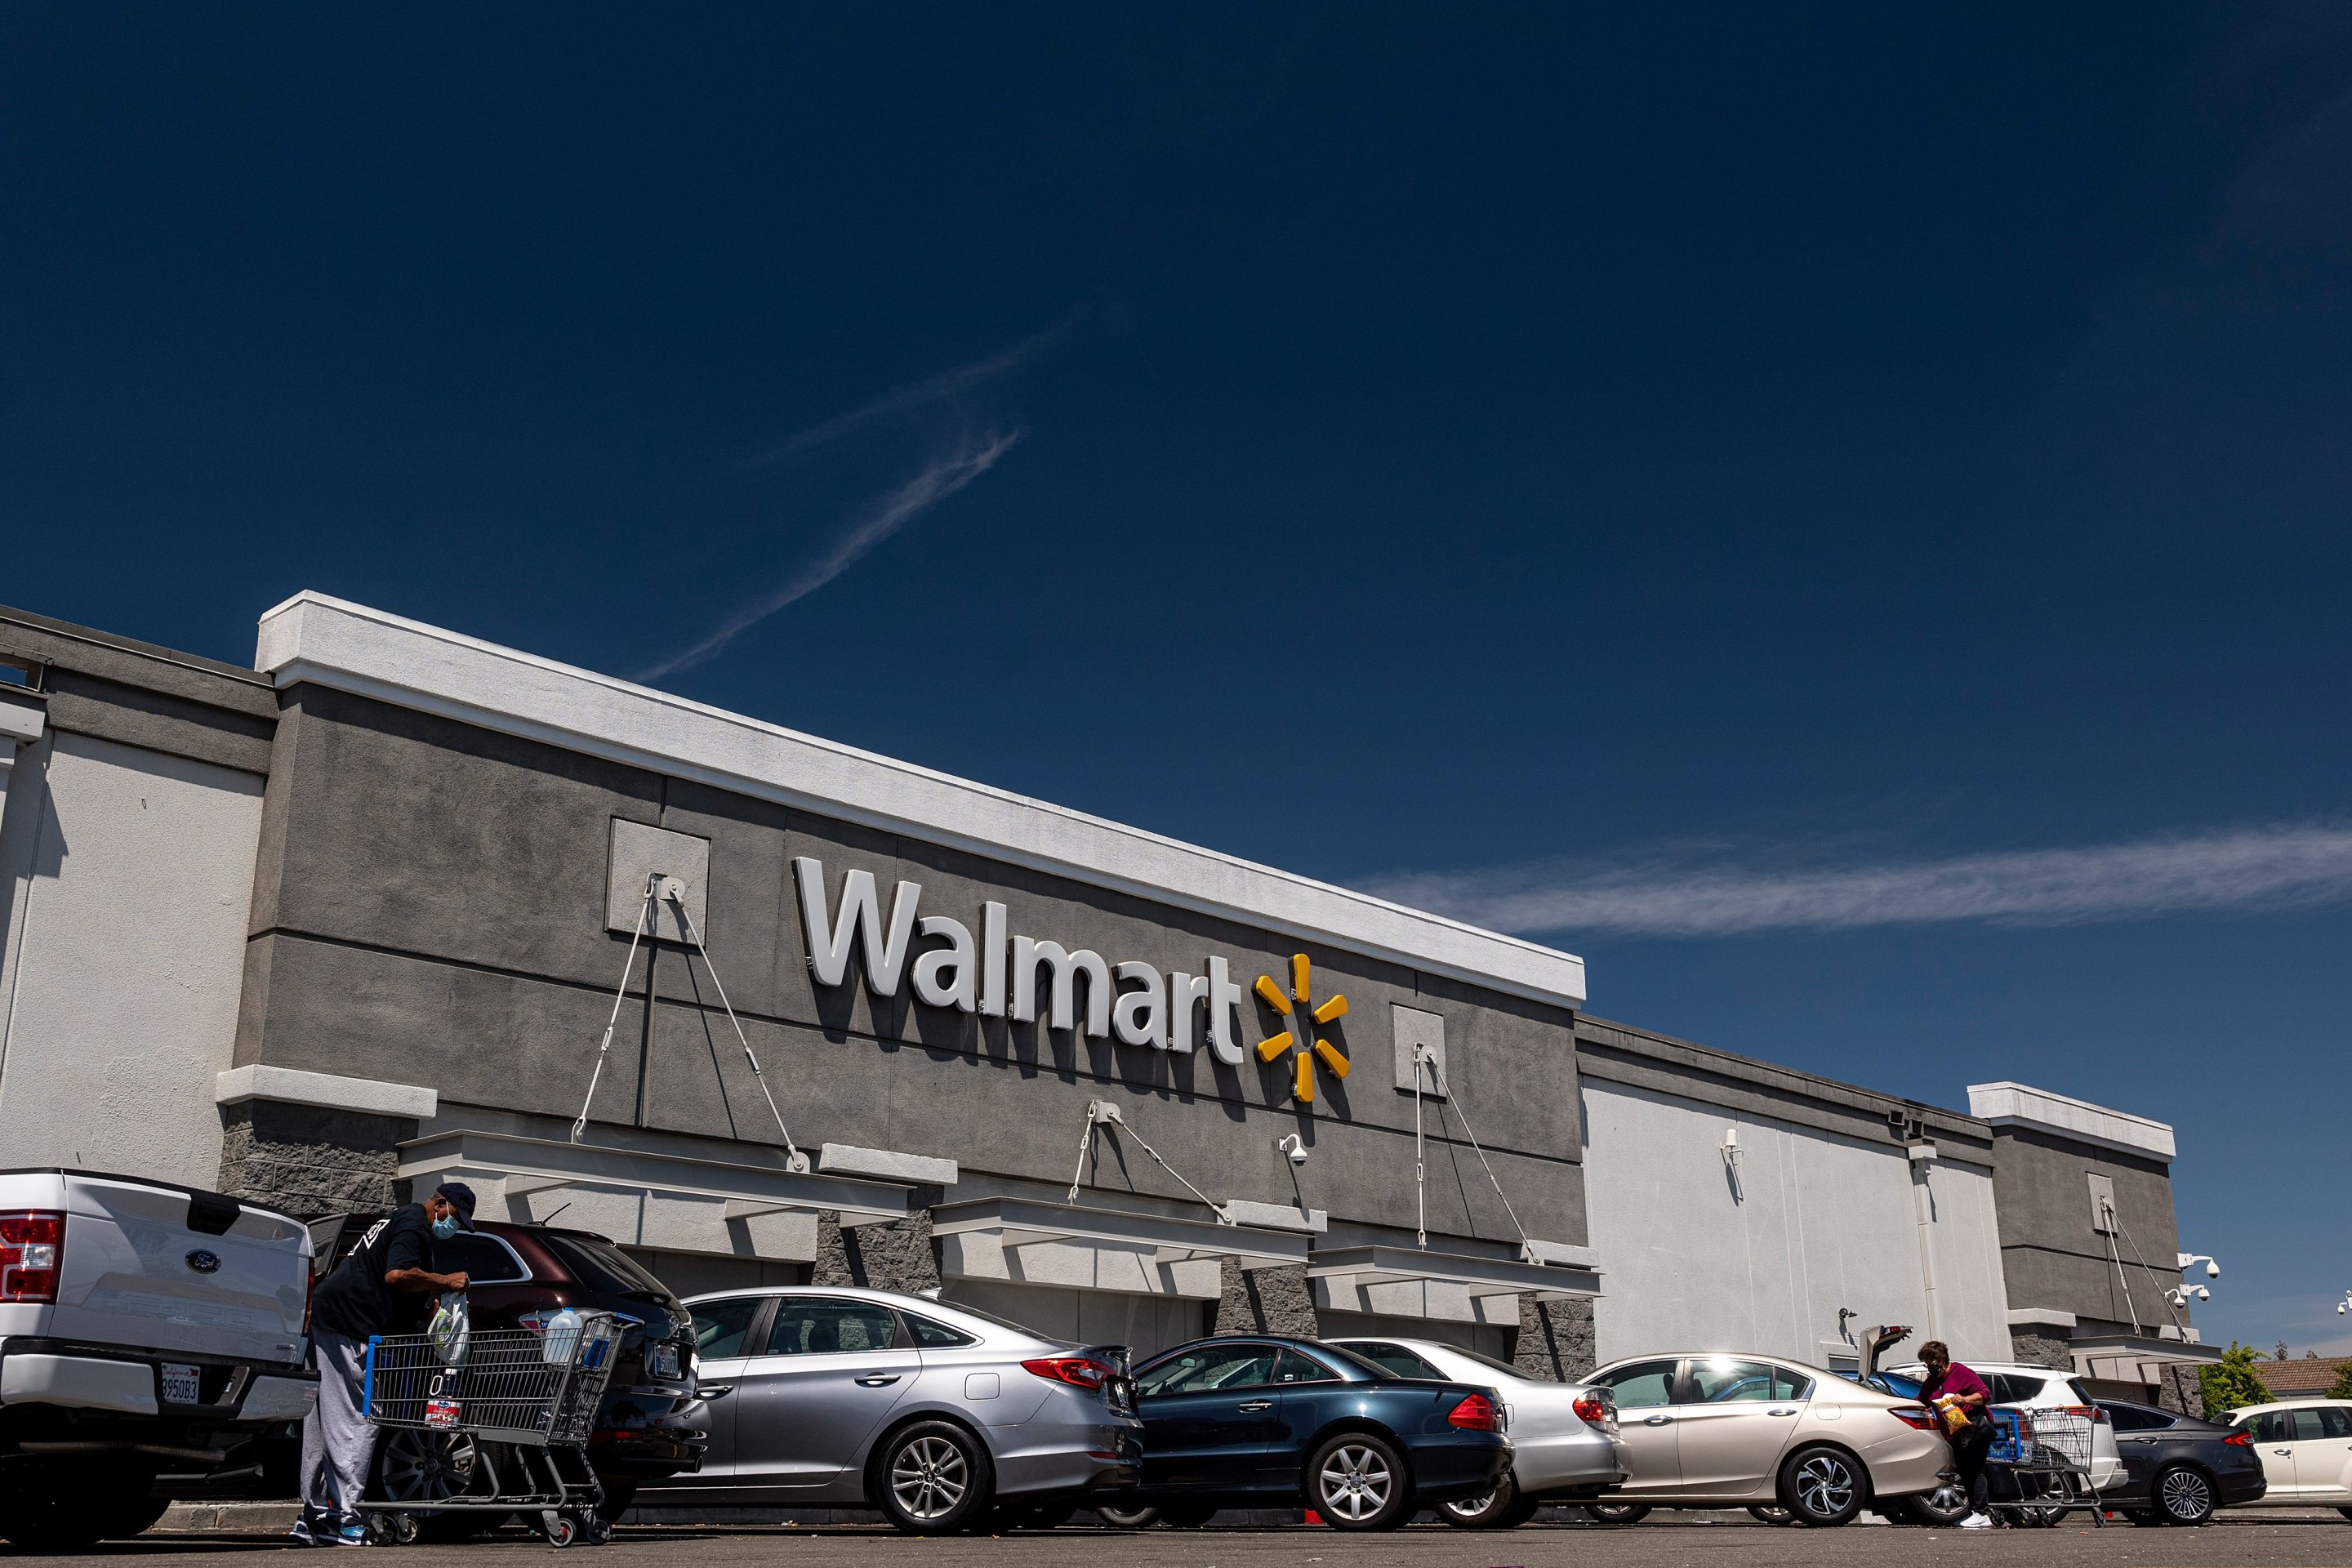 Shoppers load items into their vehicles outside a Walmart store in San Leandro, California, U.S., on Thursday, May 13, 2021. Walmart Inc. is expected to release earnings figures on May 18. Photographer: David Paul Morris/Bloomberg via Getty Images